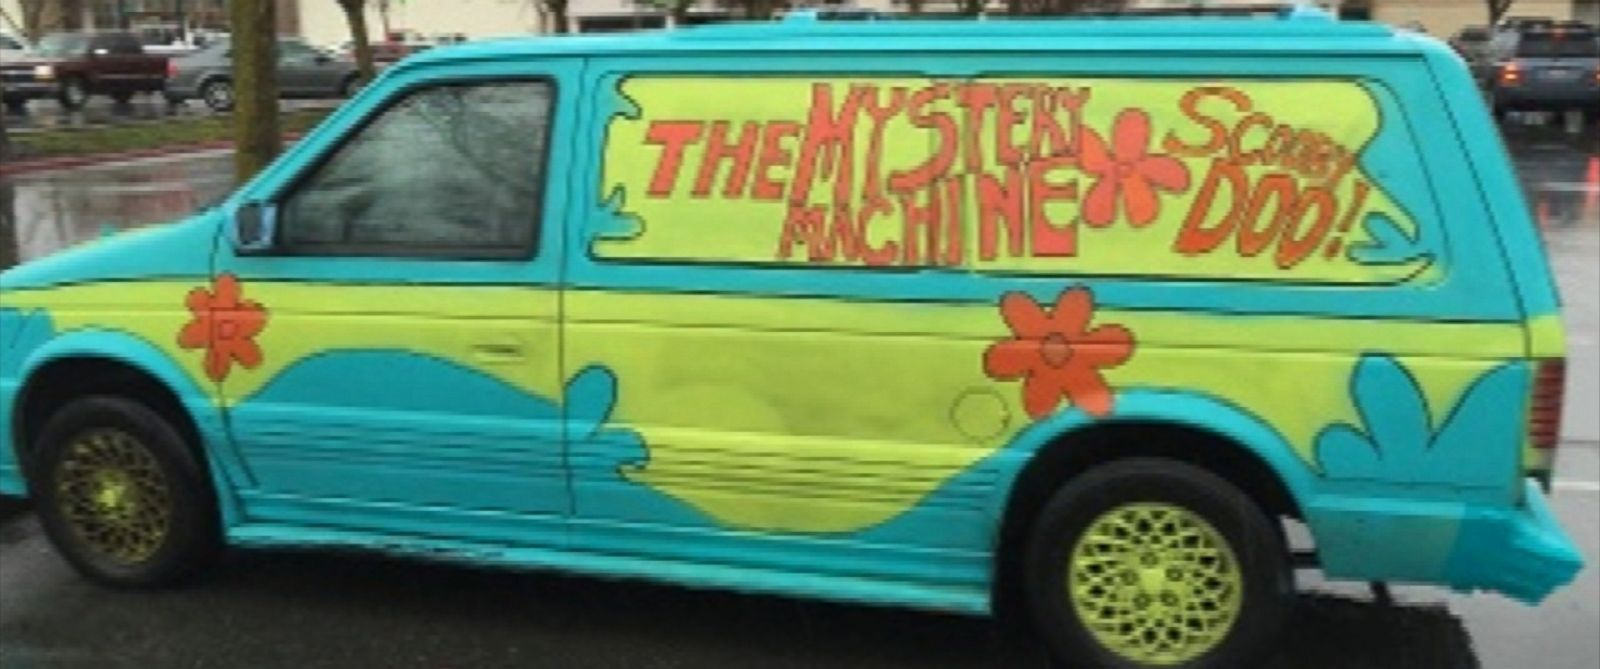 "PHOTO: Sharon Turman, 51, led police on a high-speed chase on March 6, 2016, in a van resembling the ""Mystery Machine"" on ""Scooby Doo,"" according to the Redding Police Department in California."